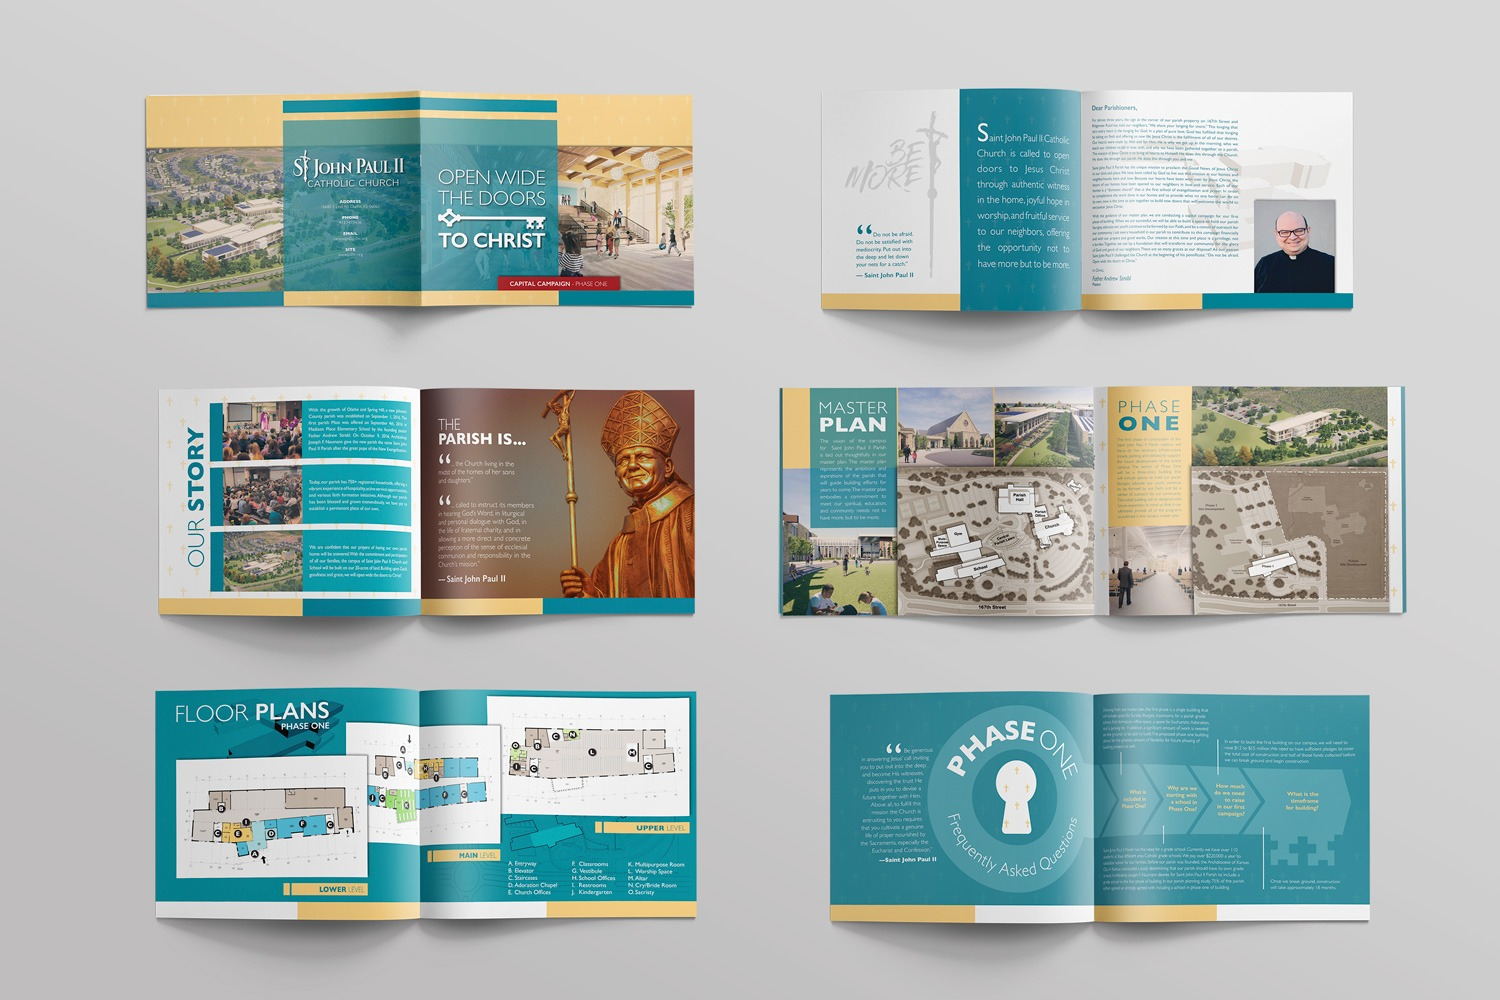 Catholic Church Capital Campaign case statement brochure for stewardship and fundraising, samples and design template by Abstract Union